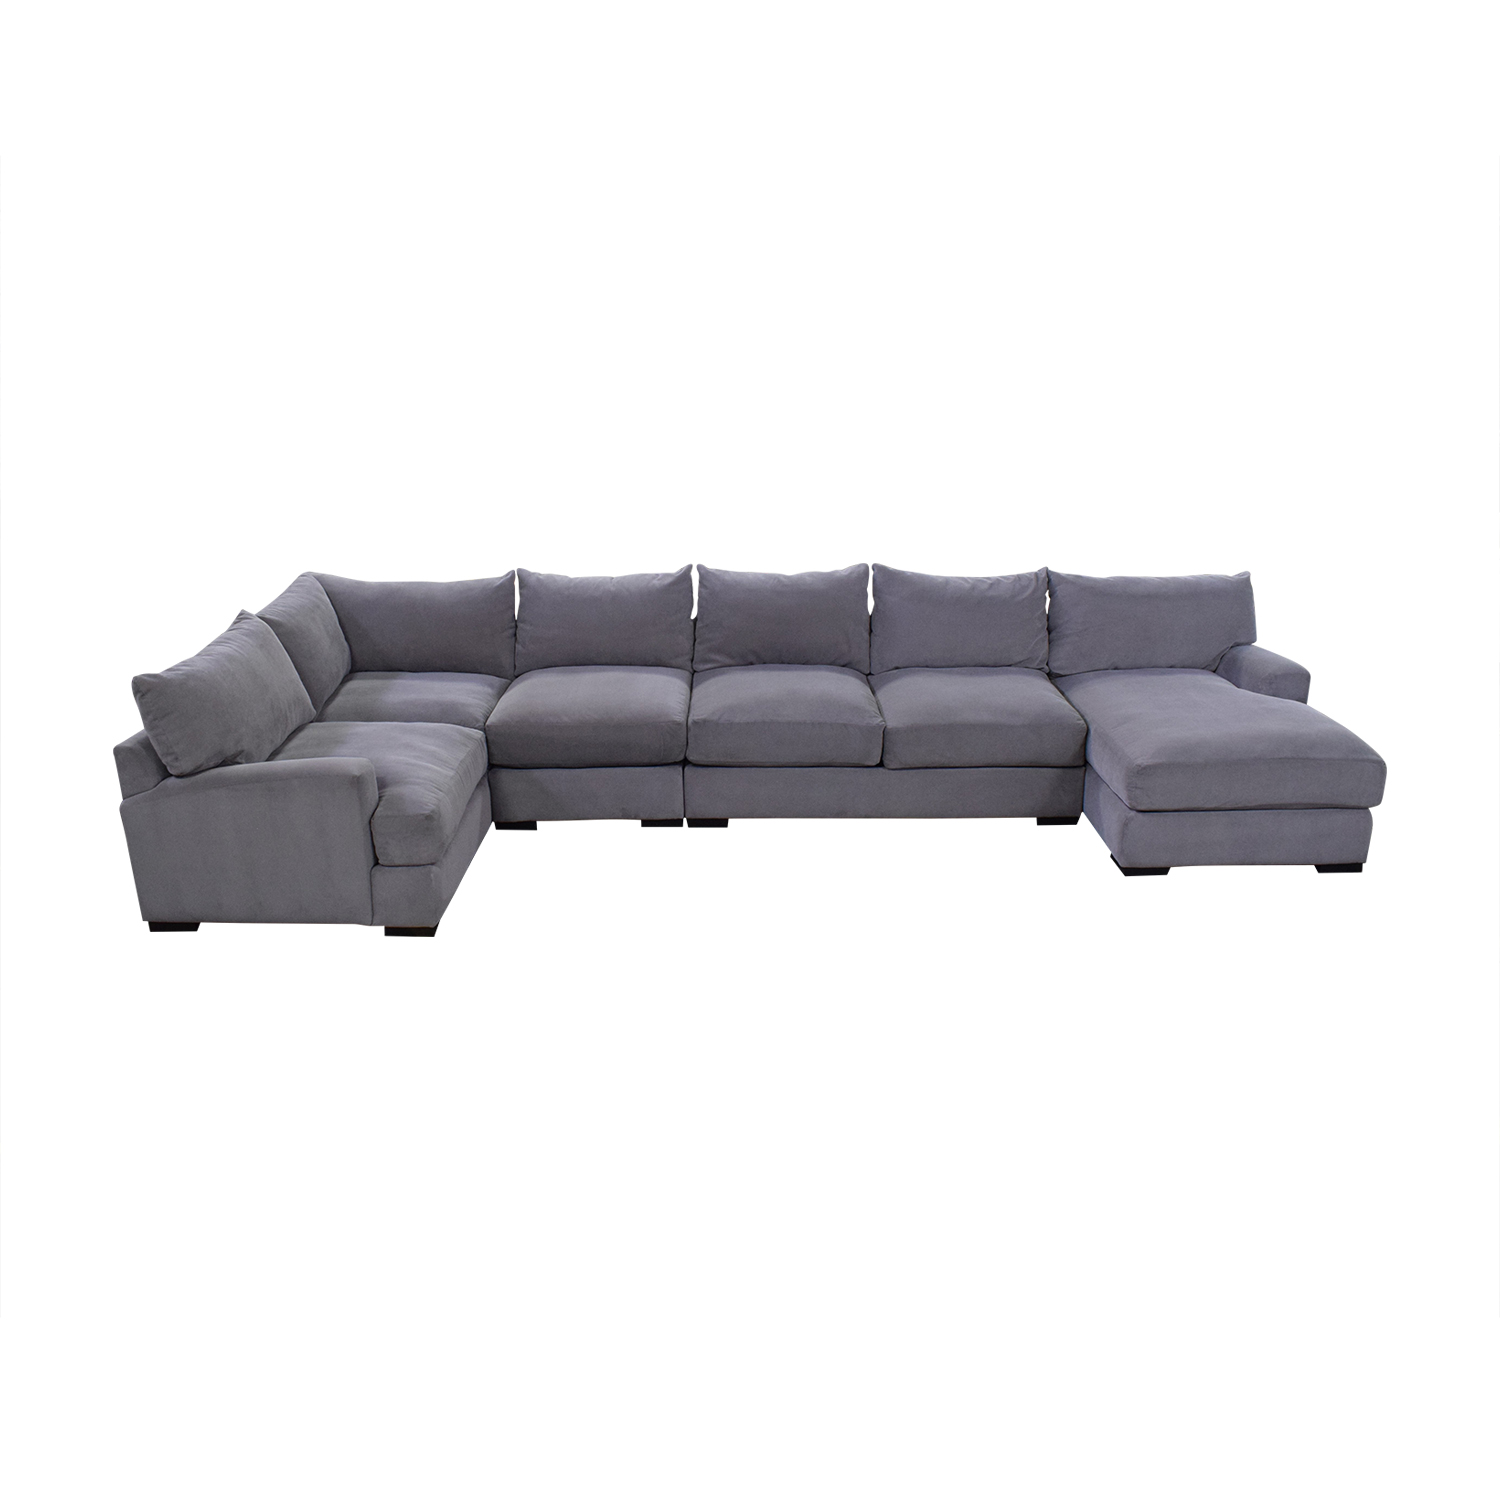 buy Macy's Rhyder 5 Piece Fabric Sectional Sofa with Chaise online